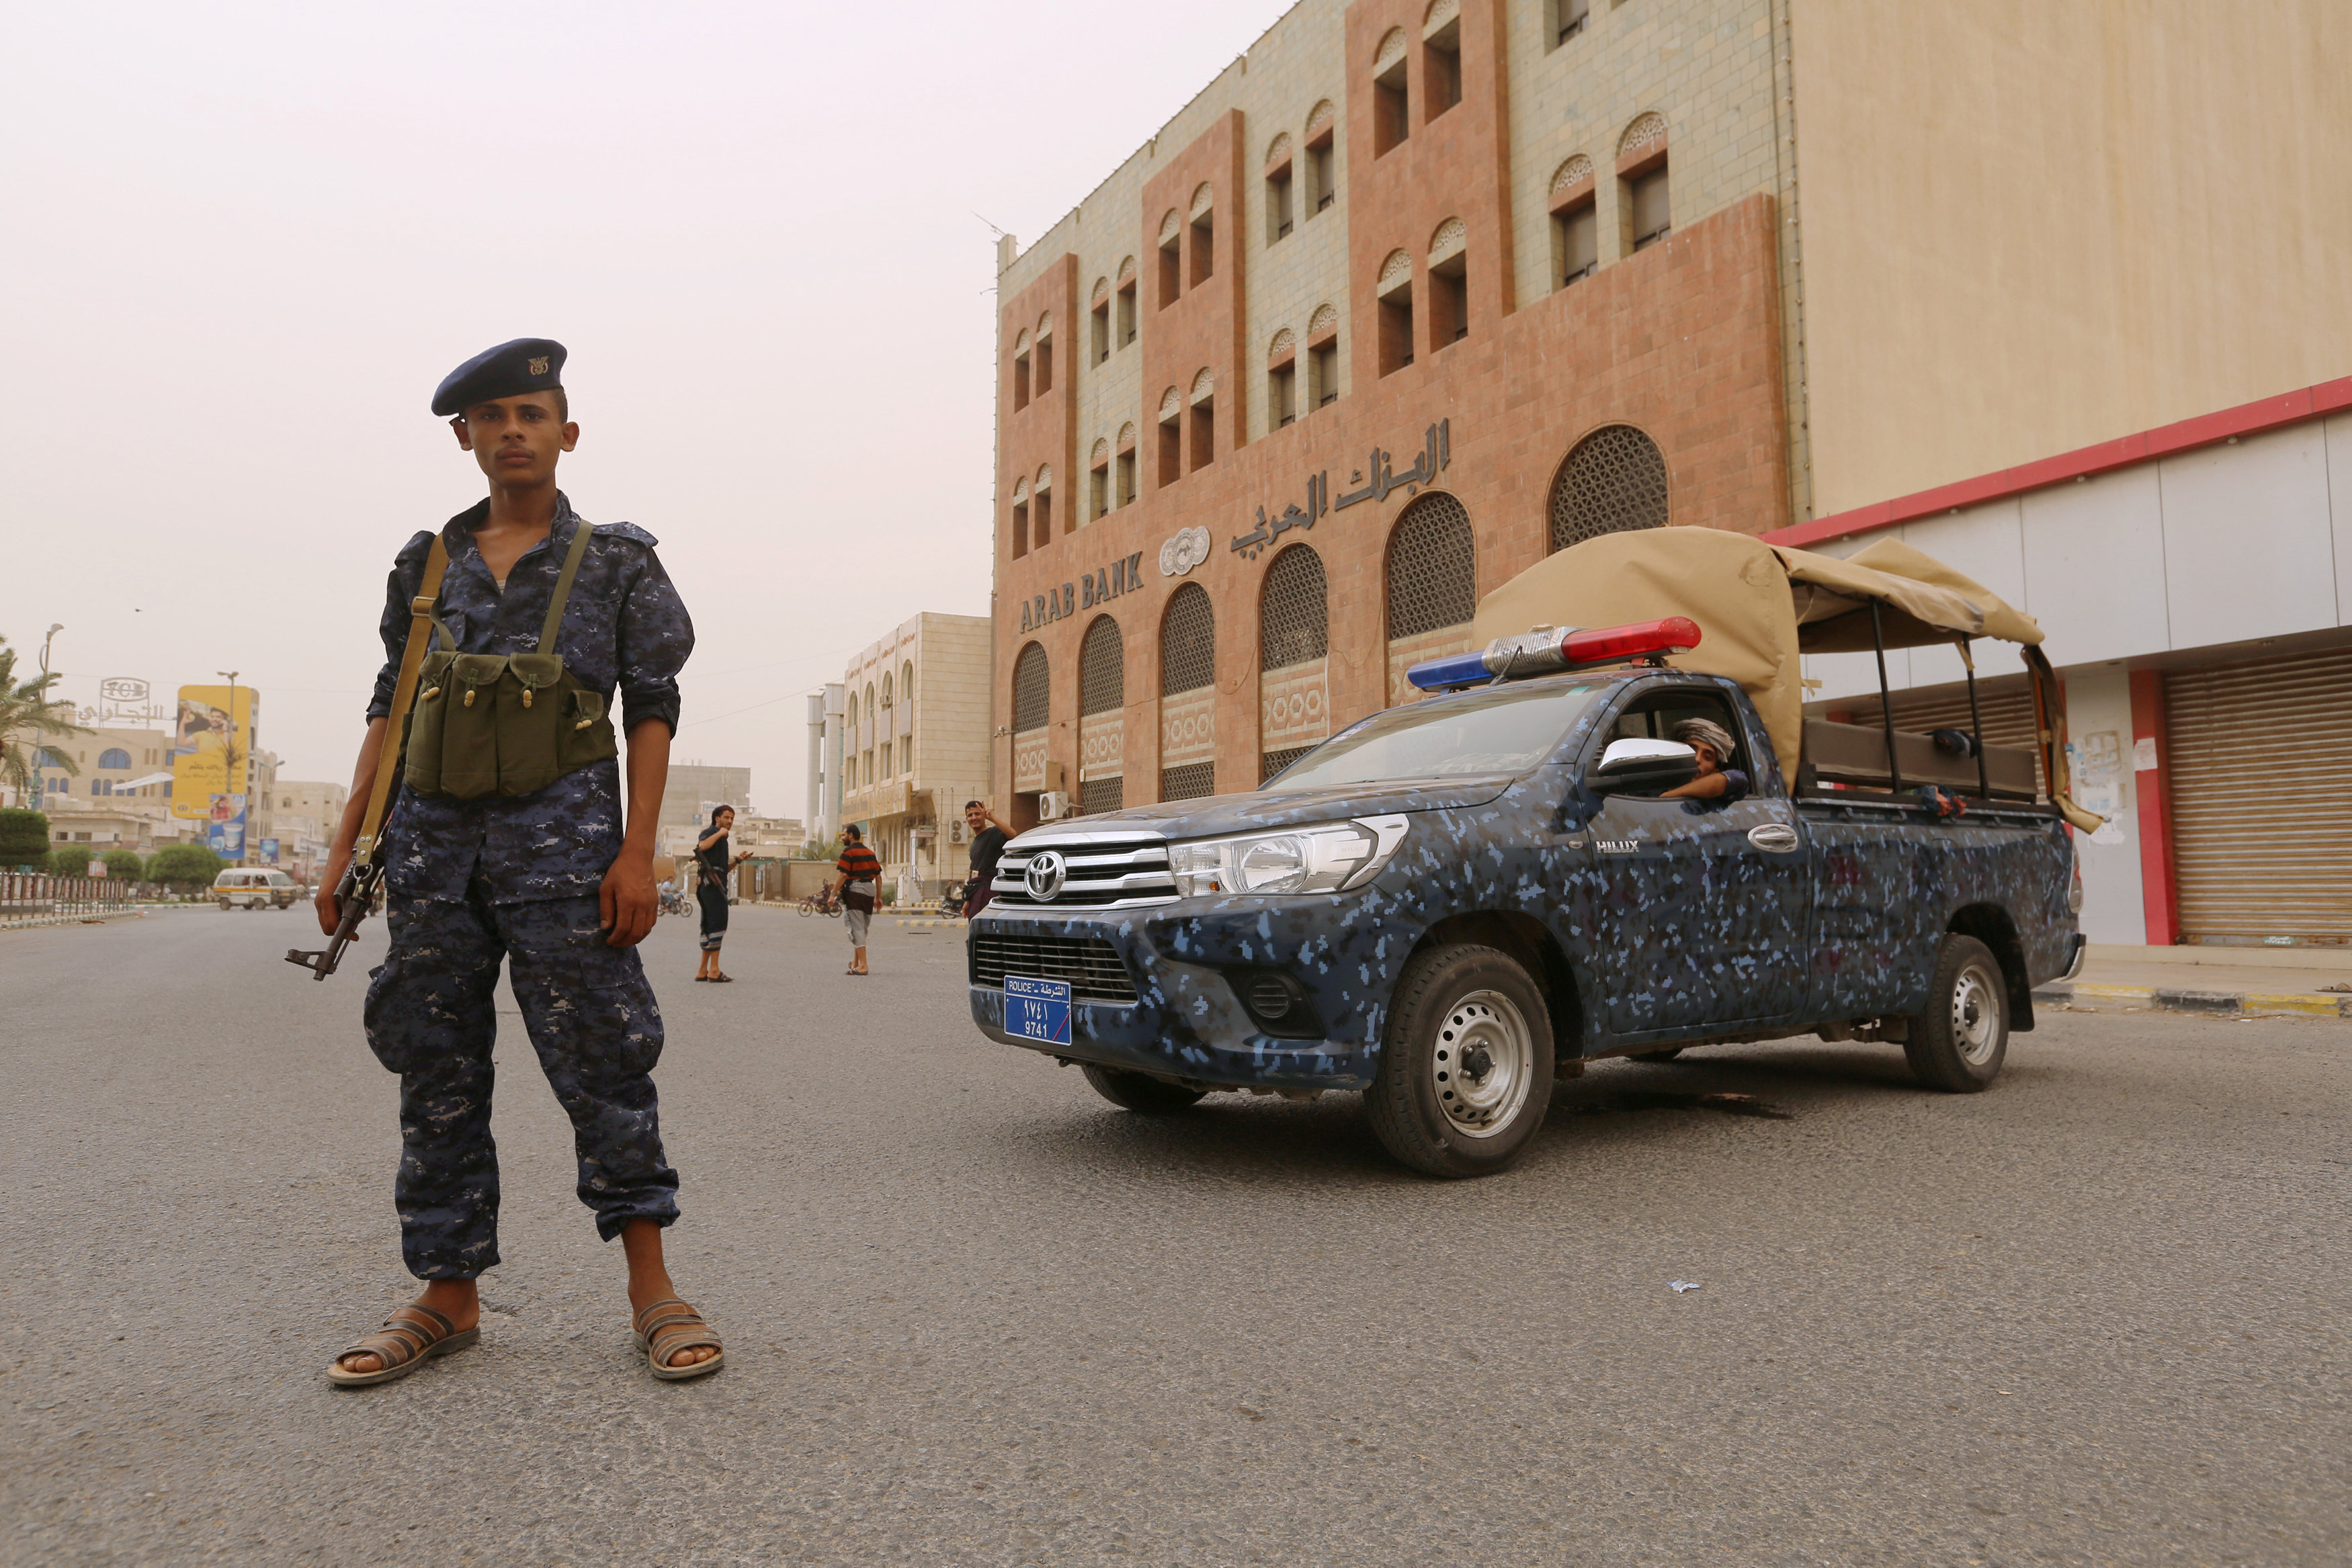 A pro-Houthi police trooper stands past a patrol vehicle in the Red Sea port city of Hodeidah, Yemen June 14, 2018. REUTERS/Abduljabbar Zeyad